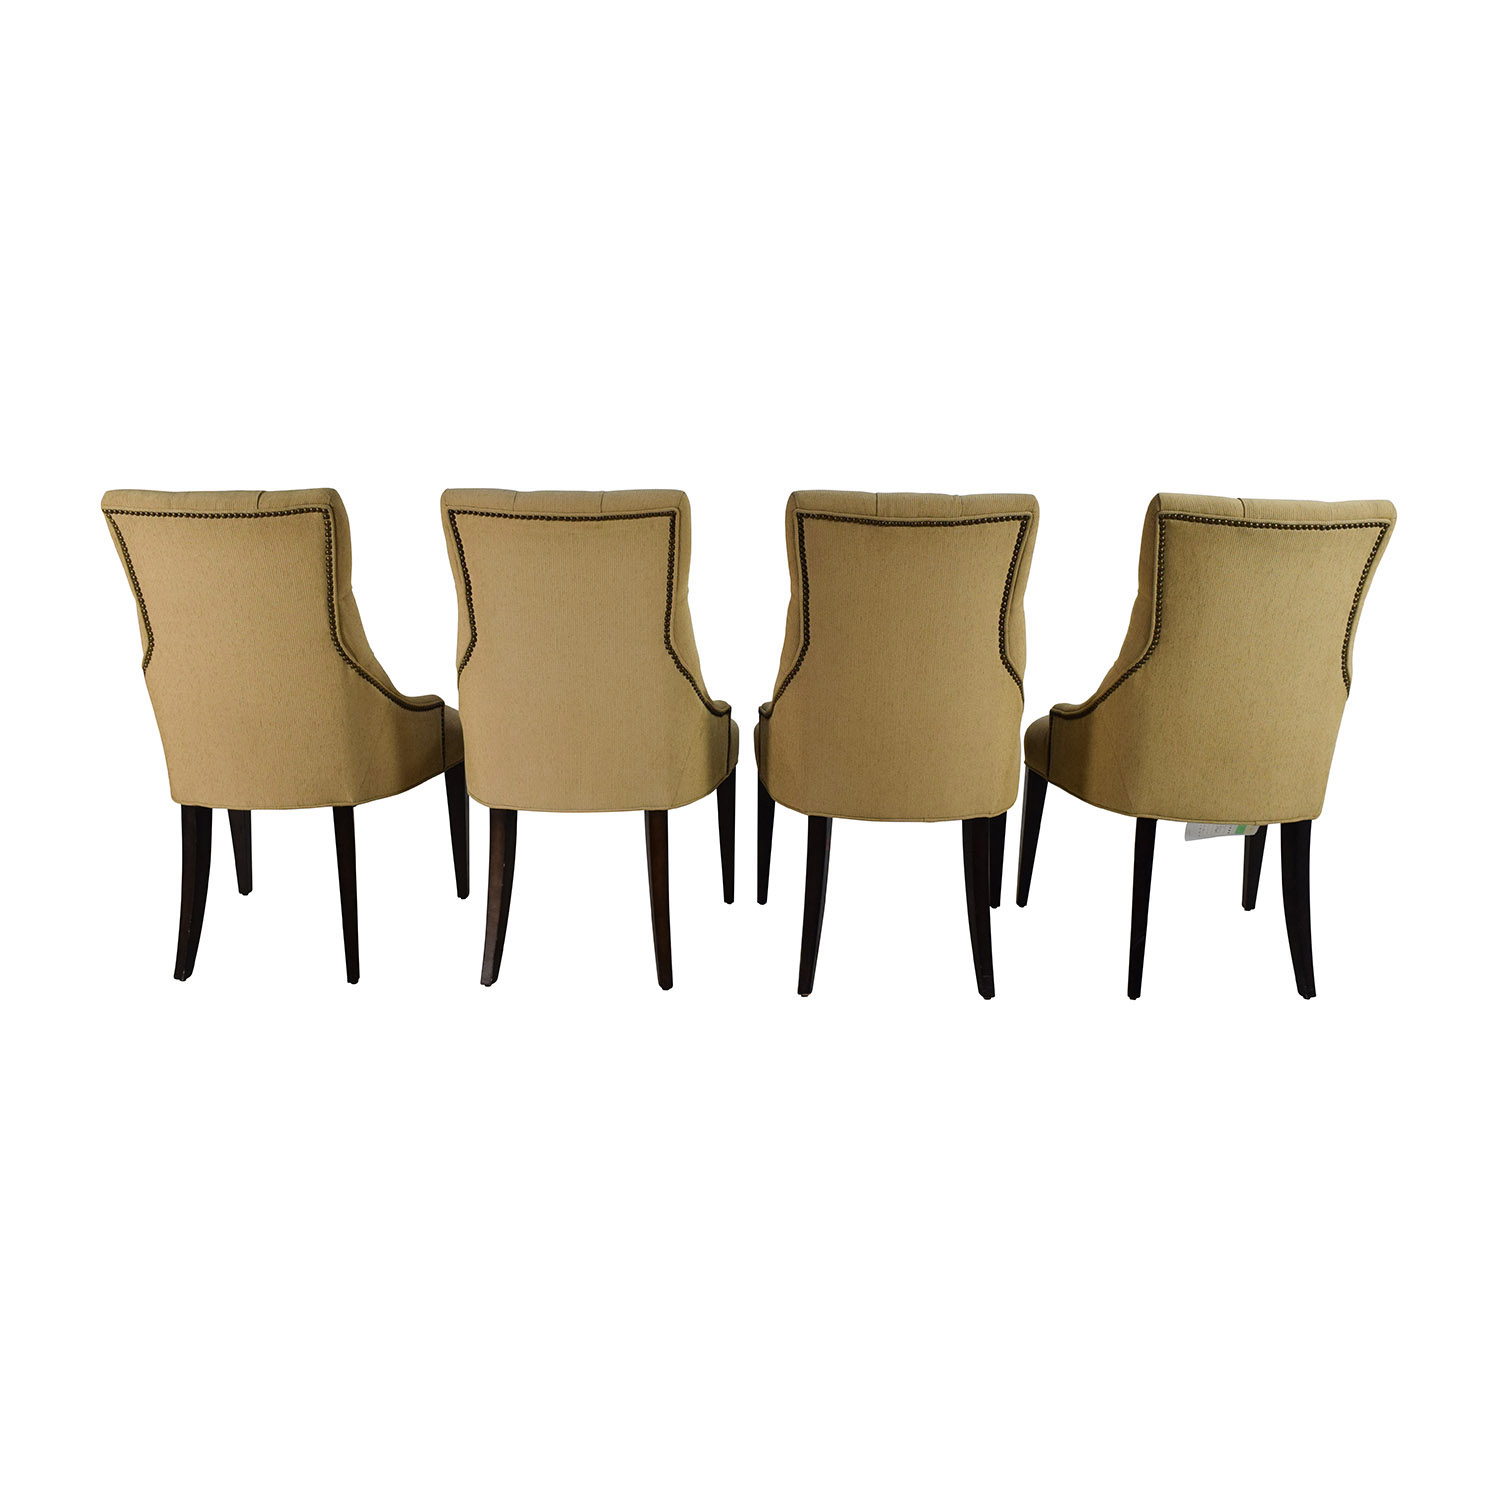 90 off restoration hardware restoration hardware for Tufted dining chairs for sale